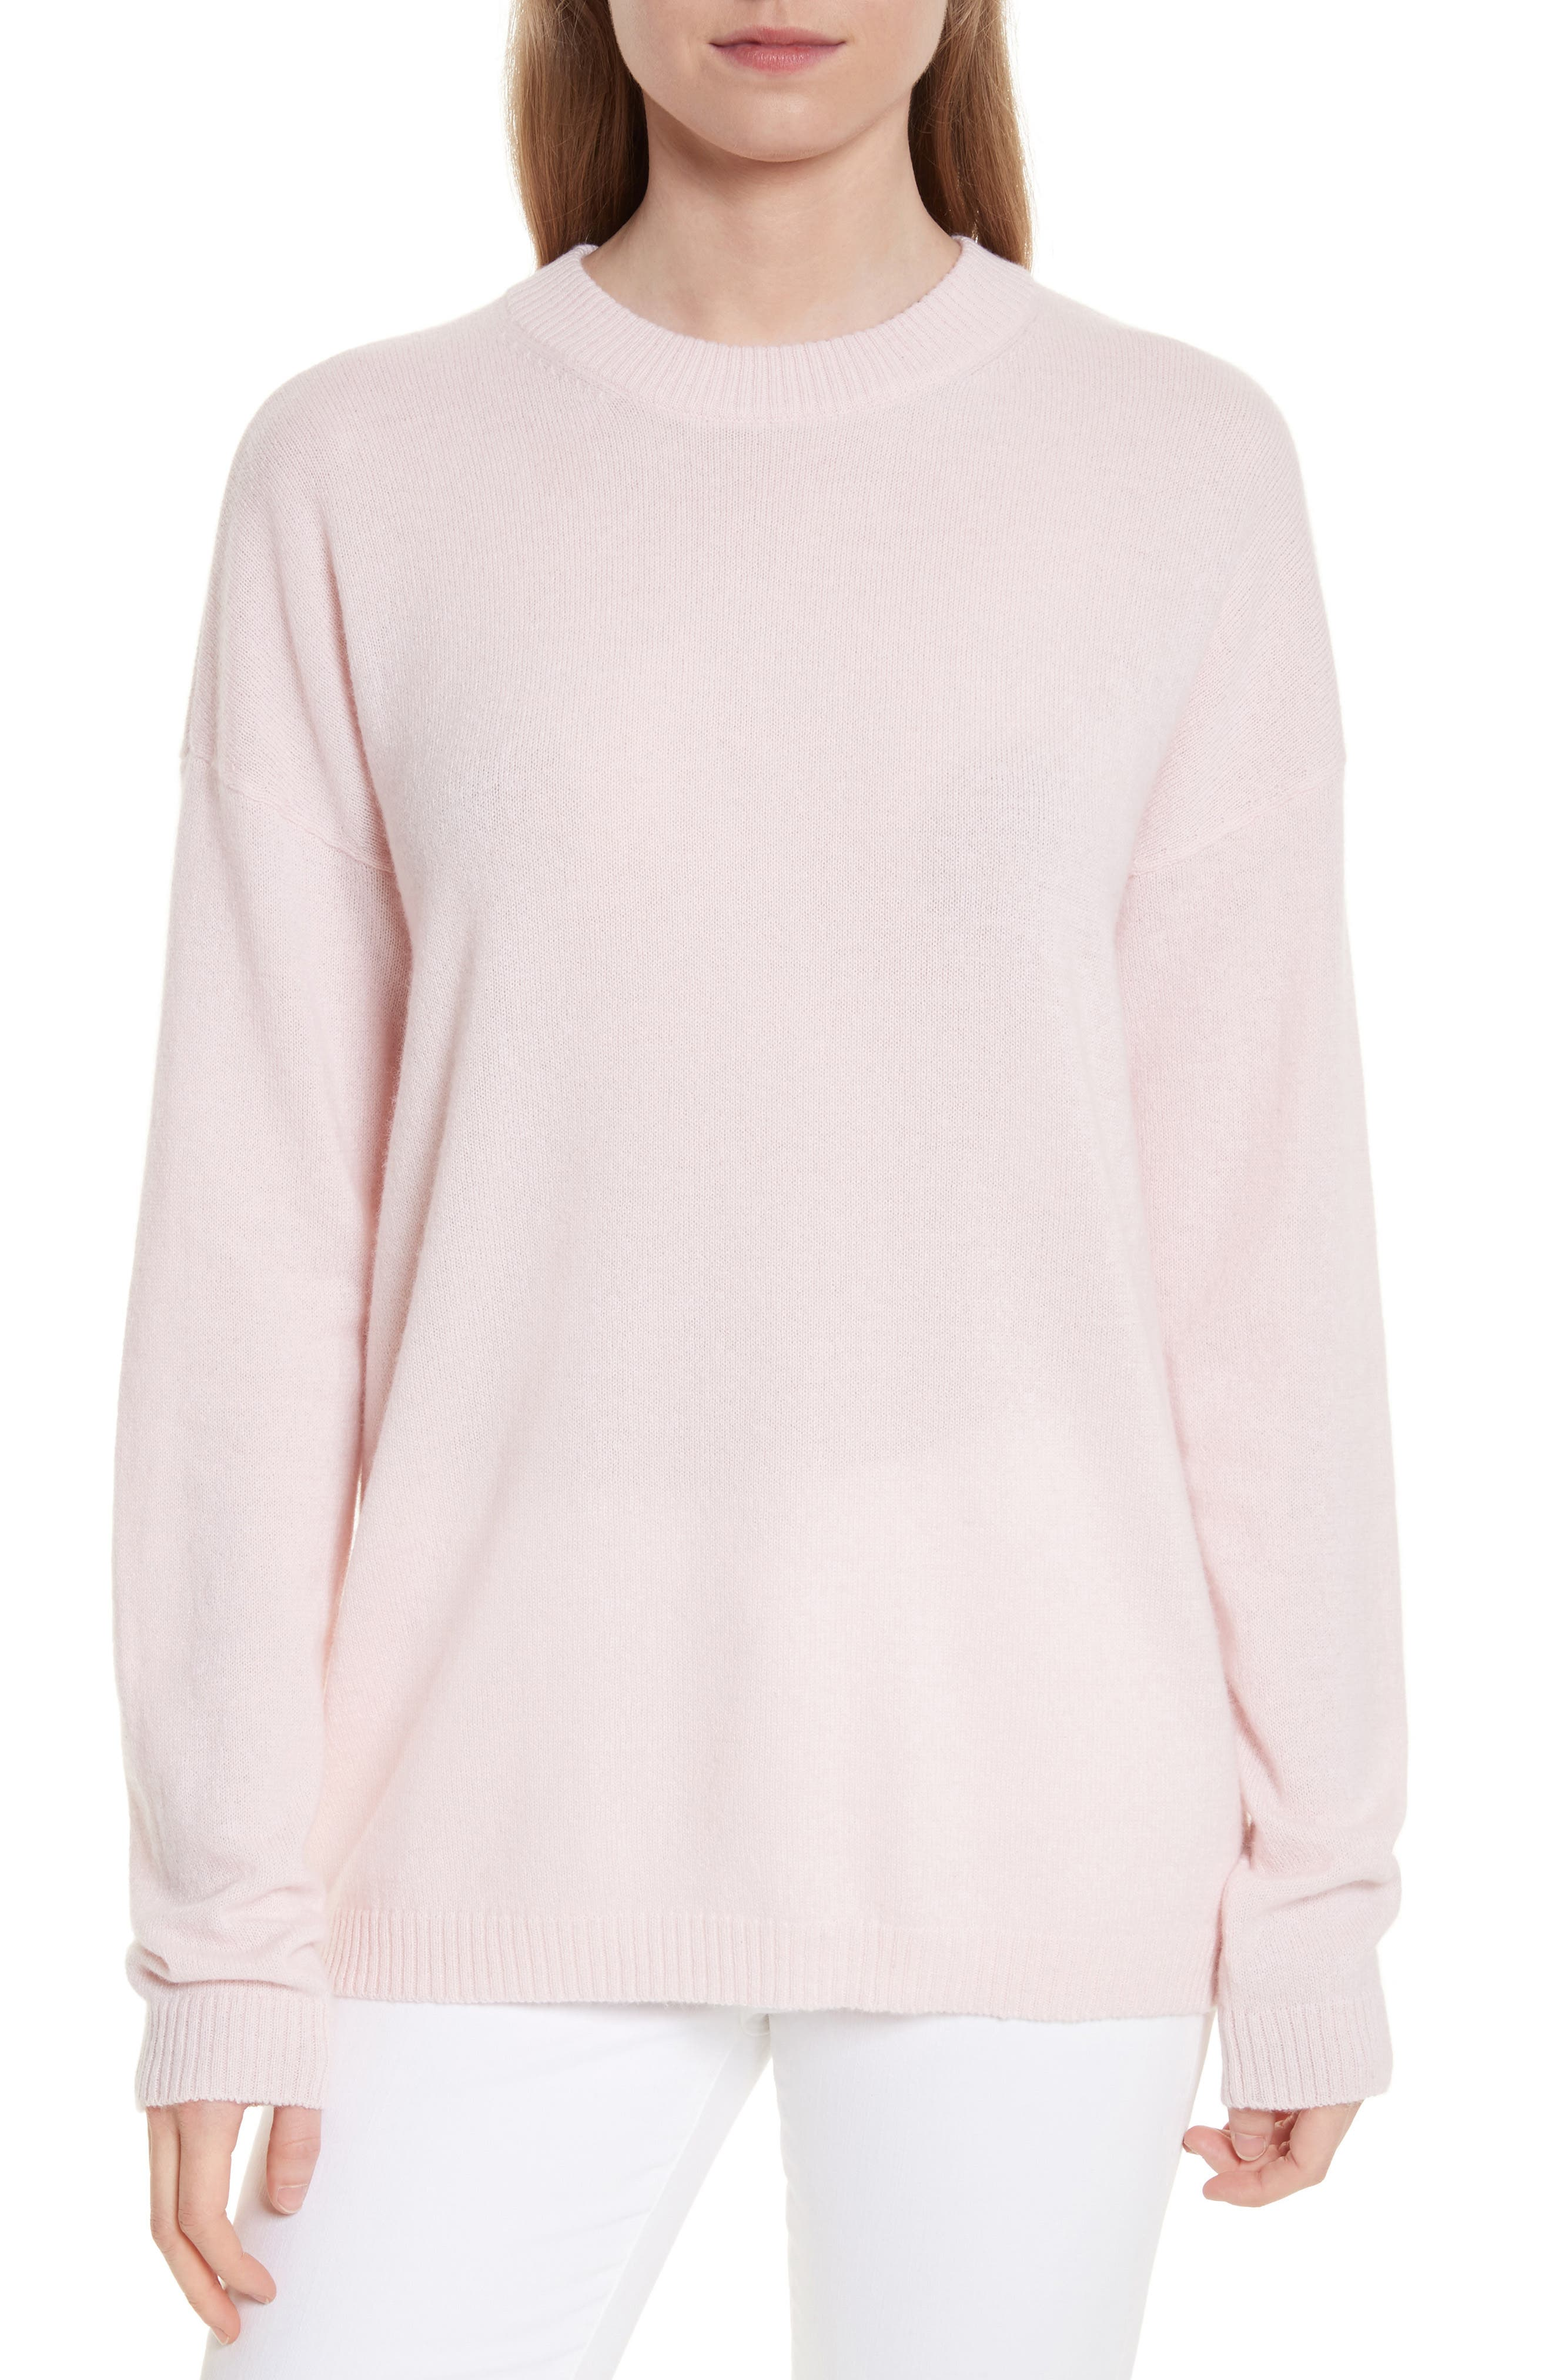 Bryce Oversize Cashmere Sweater,                         Main,                         color, Cosmetic Pink